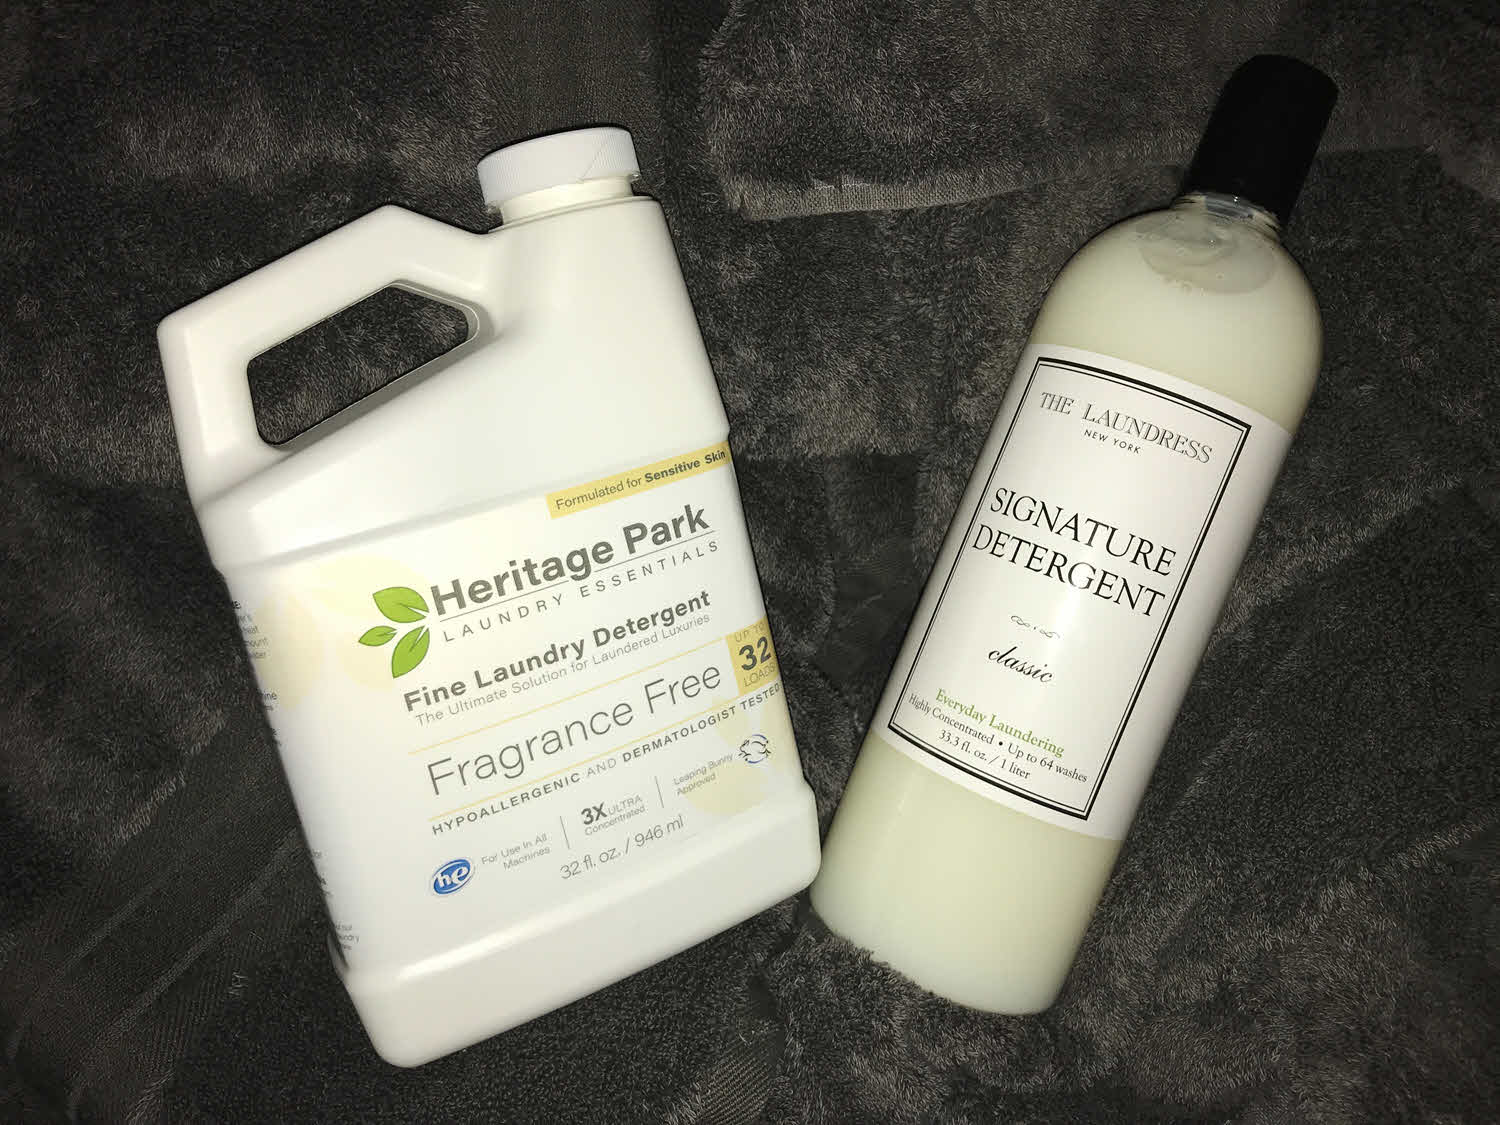 The difference between Heritage Park vs. The Laundress comparing luxury laundry detergent